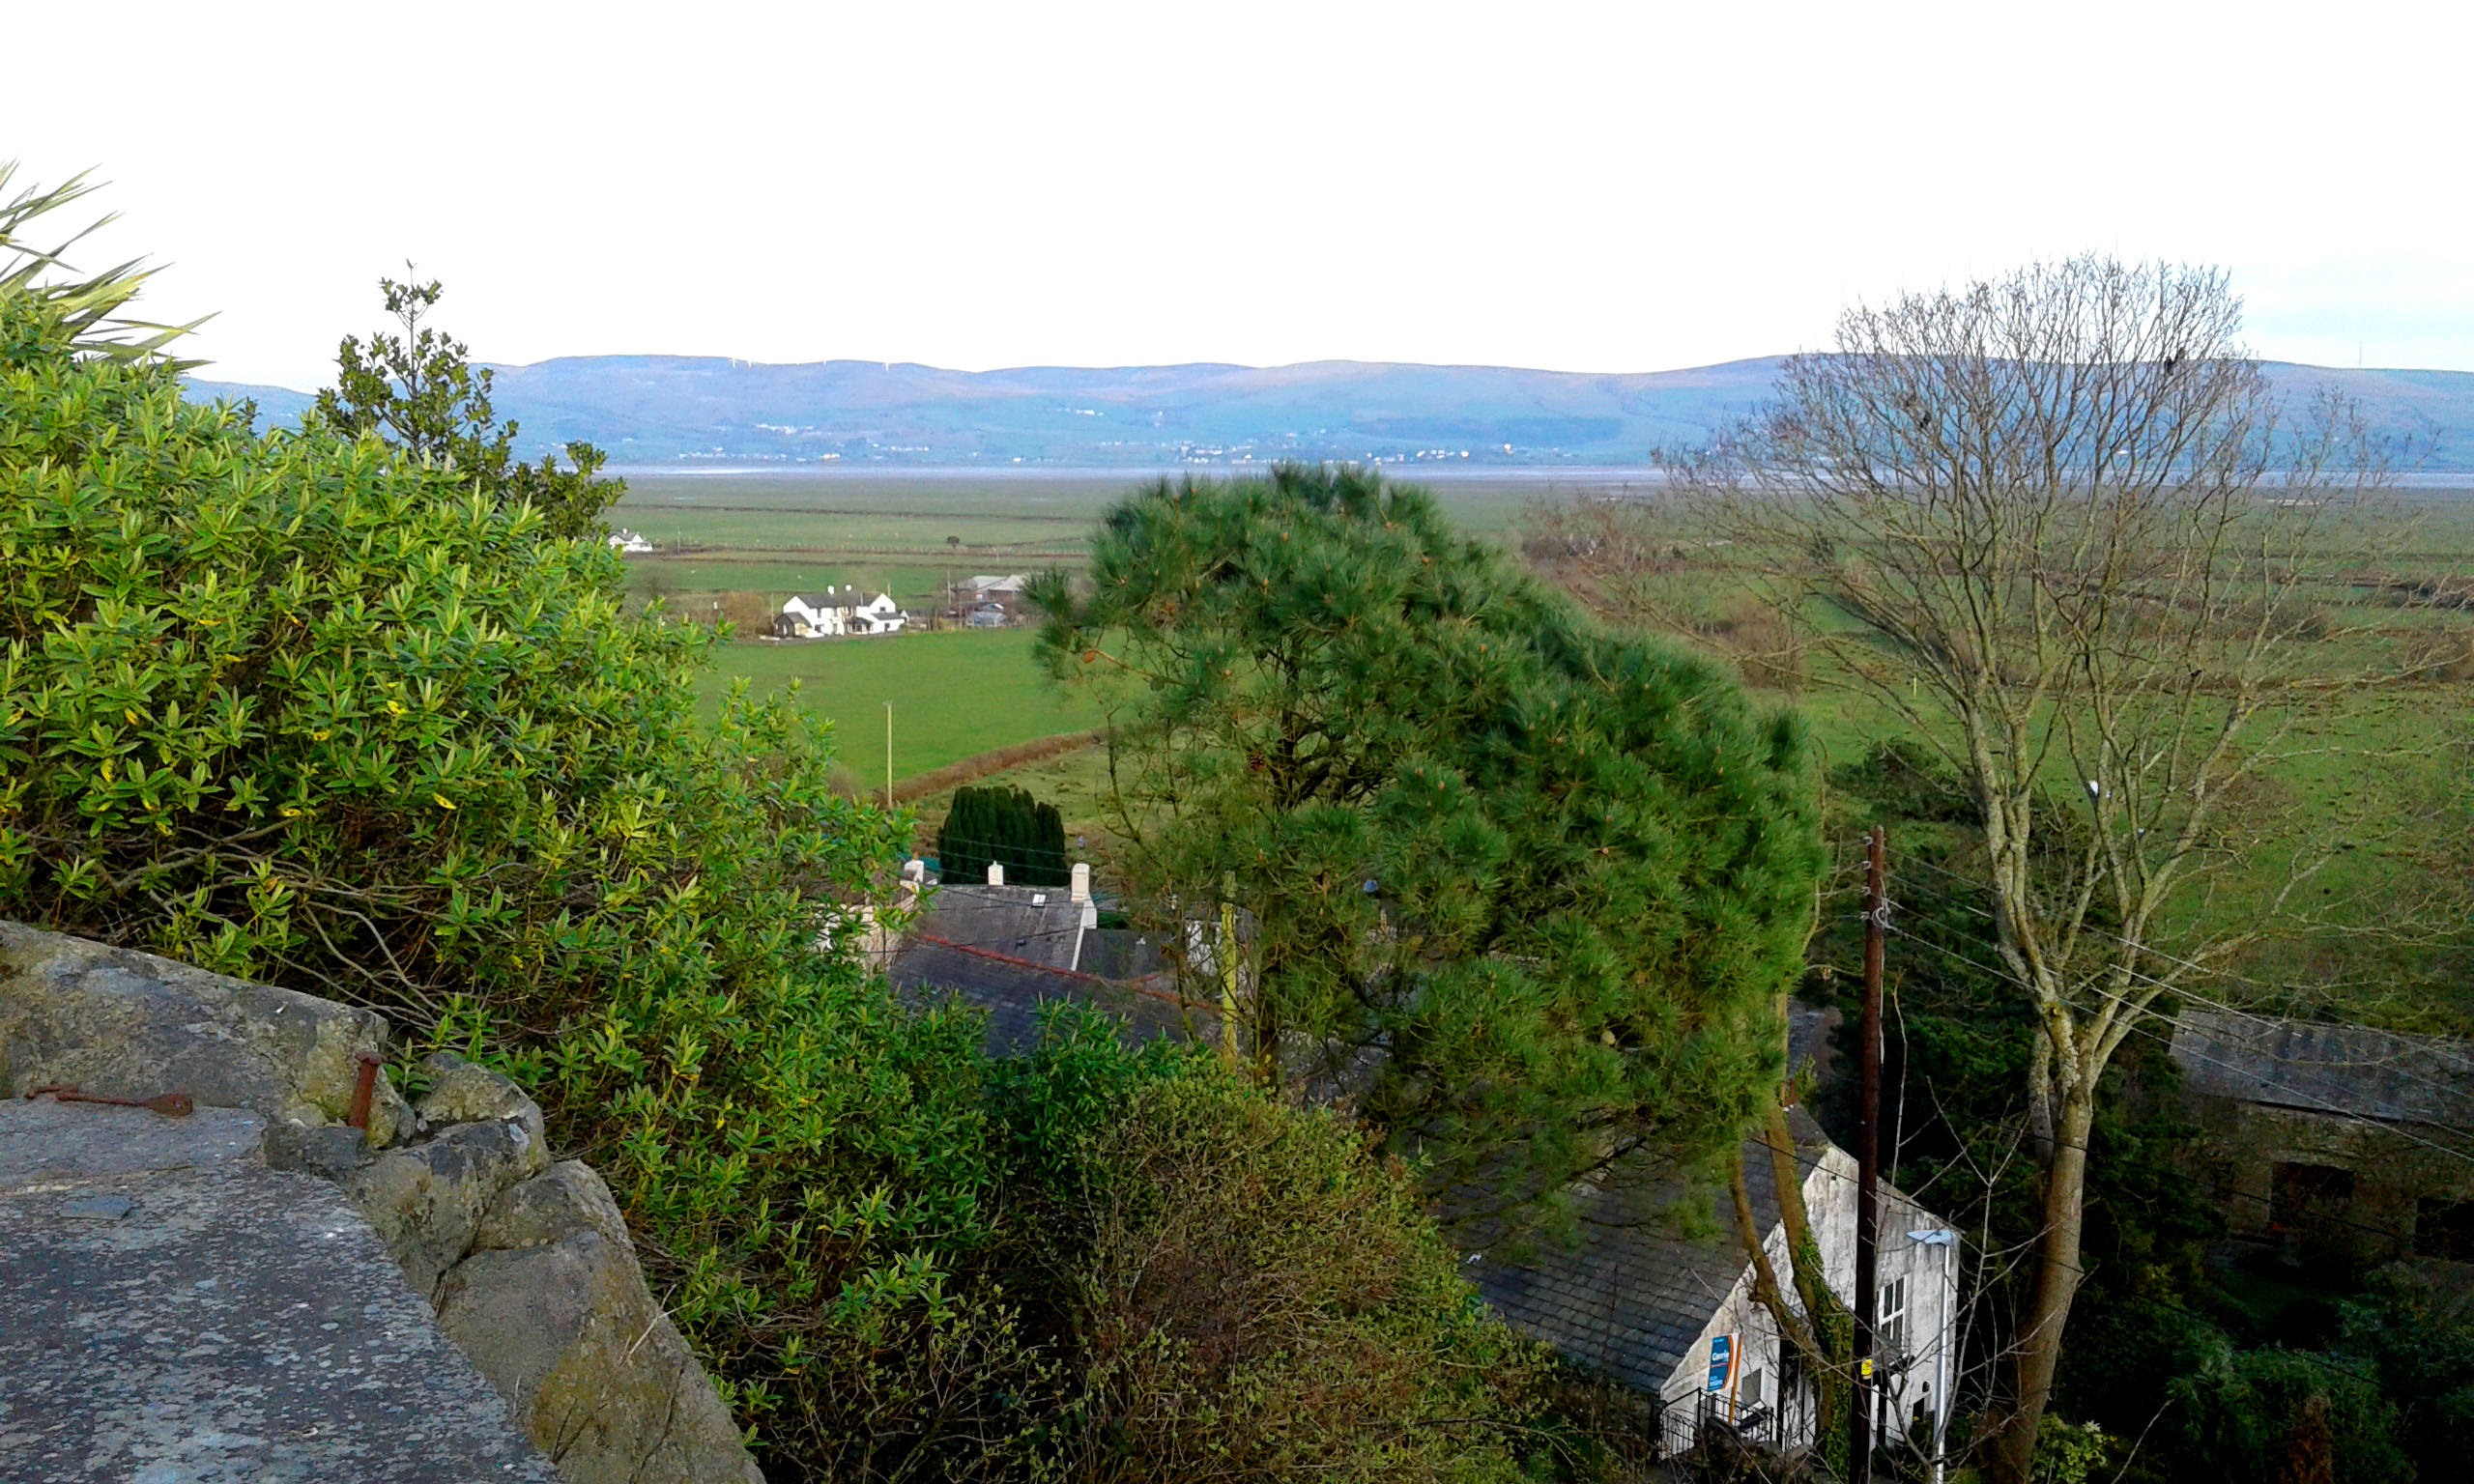 Looking across Underhill to the Duddon Estuary